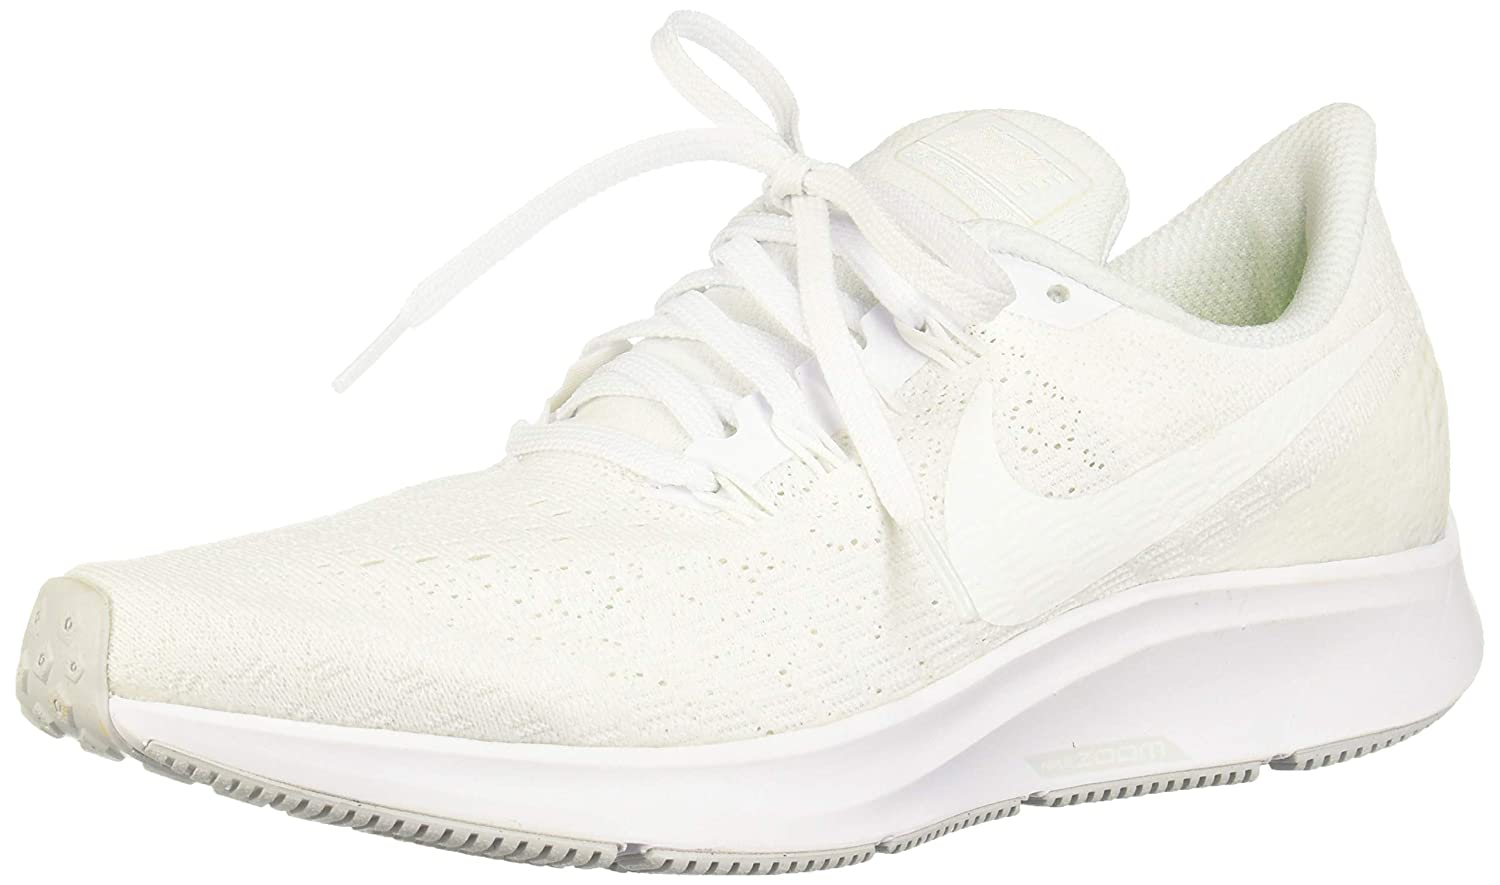 White Summit White-pure Platinum Nike Women's Air Zoom Pegasus 35 Running shoes